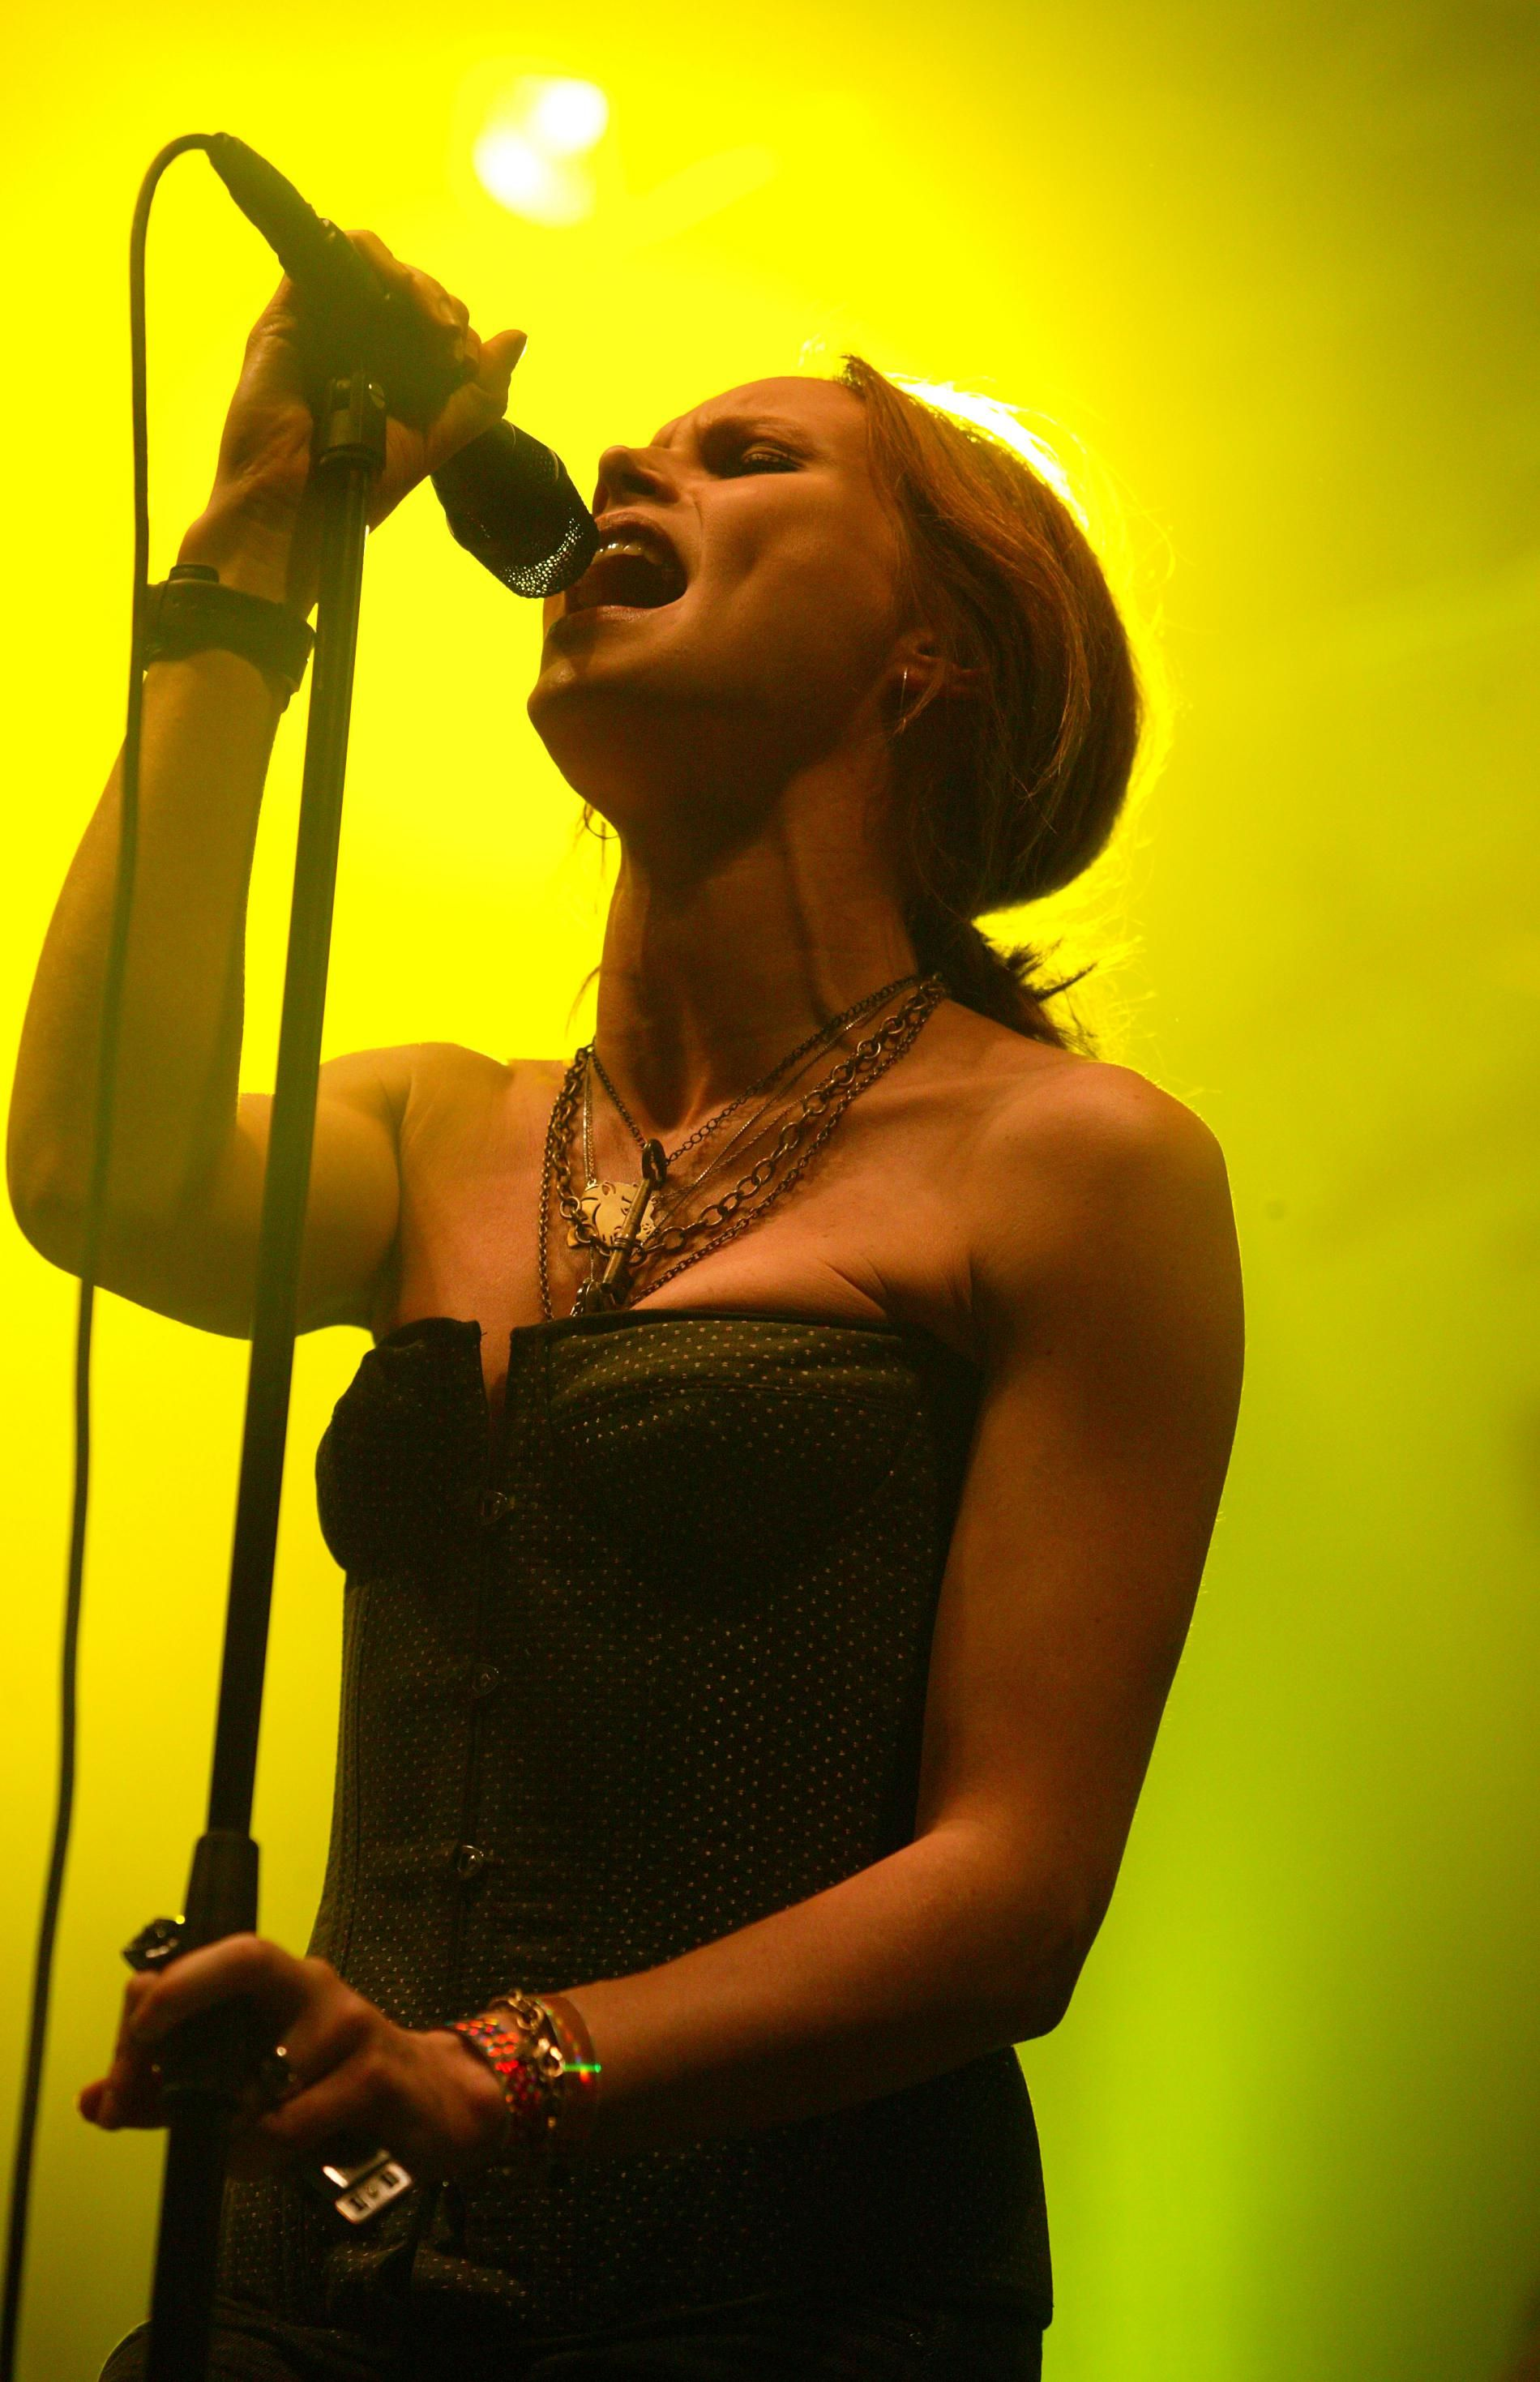 Nina Persson, The Cardigans, Peace And Love 2006 FIGJAM